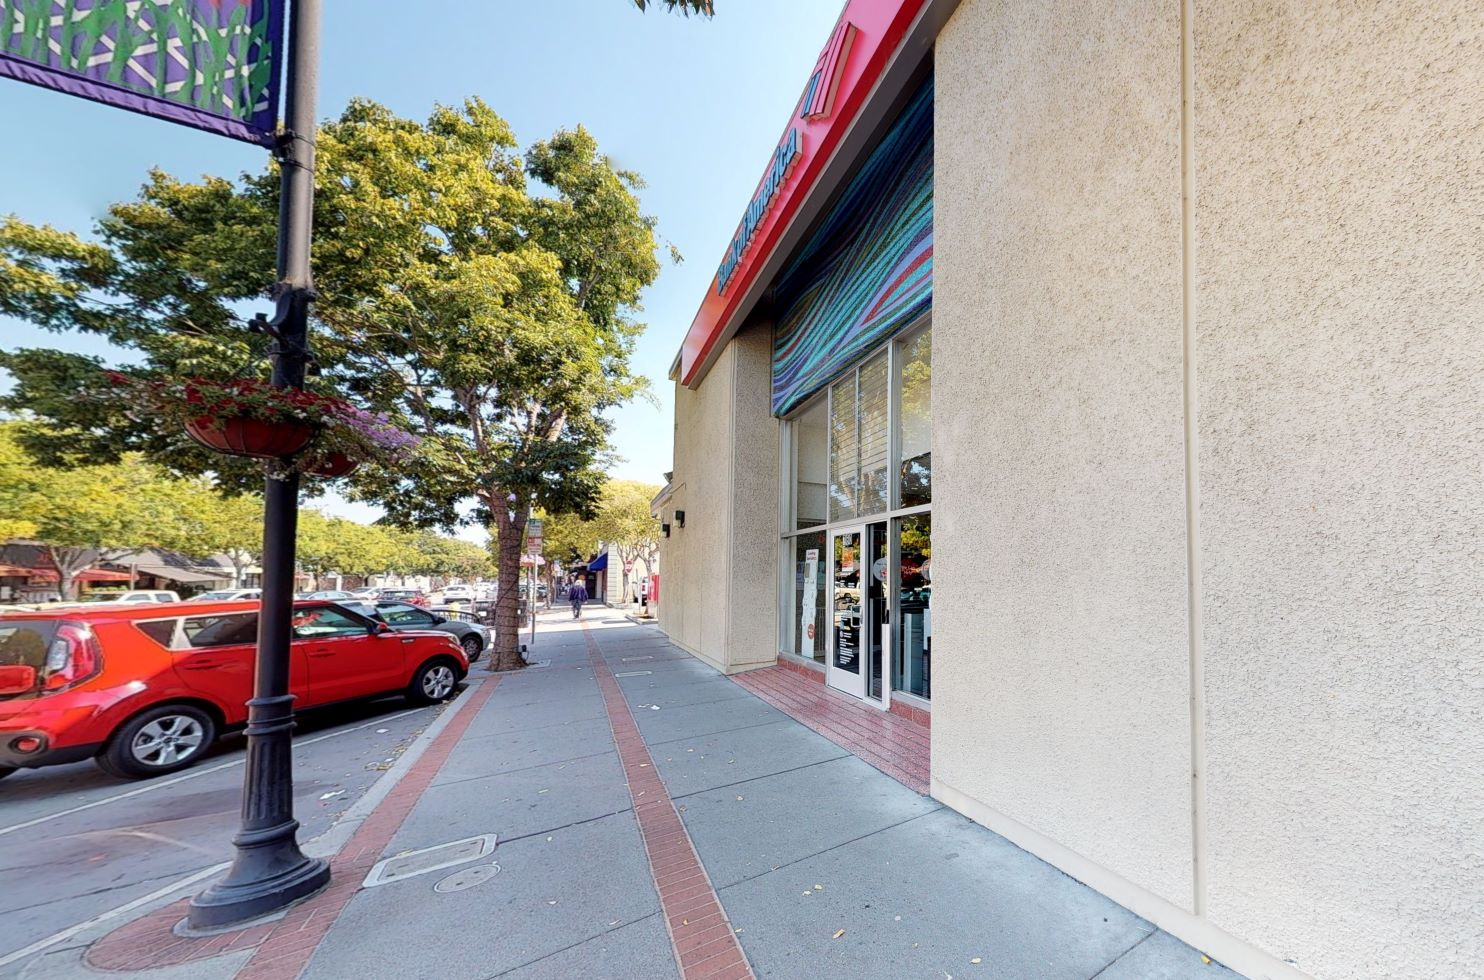 Bank of America financial center with walk-up ATM | 760 Laurel St, San Carlos, CA 94070